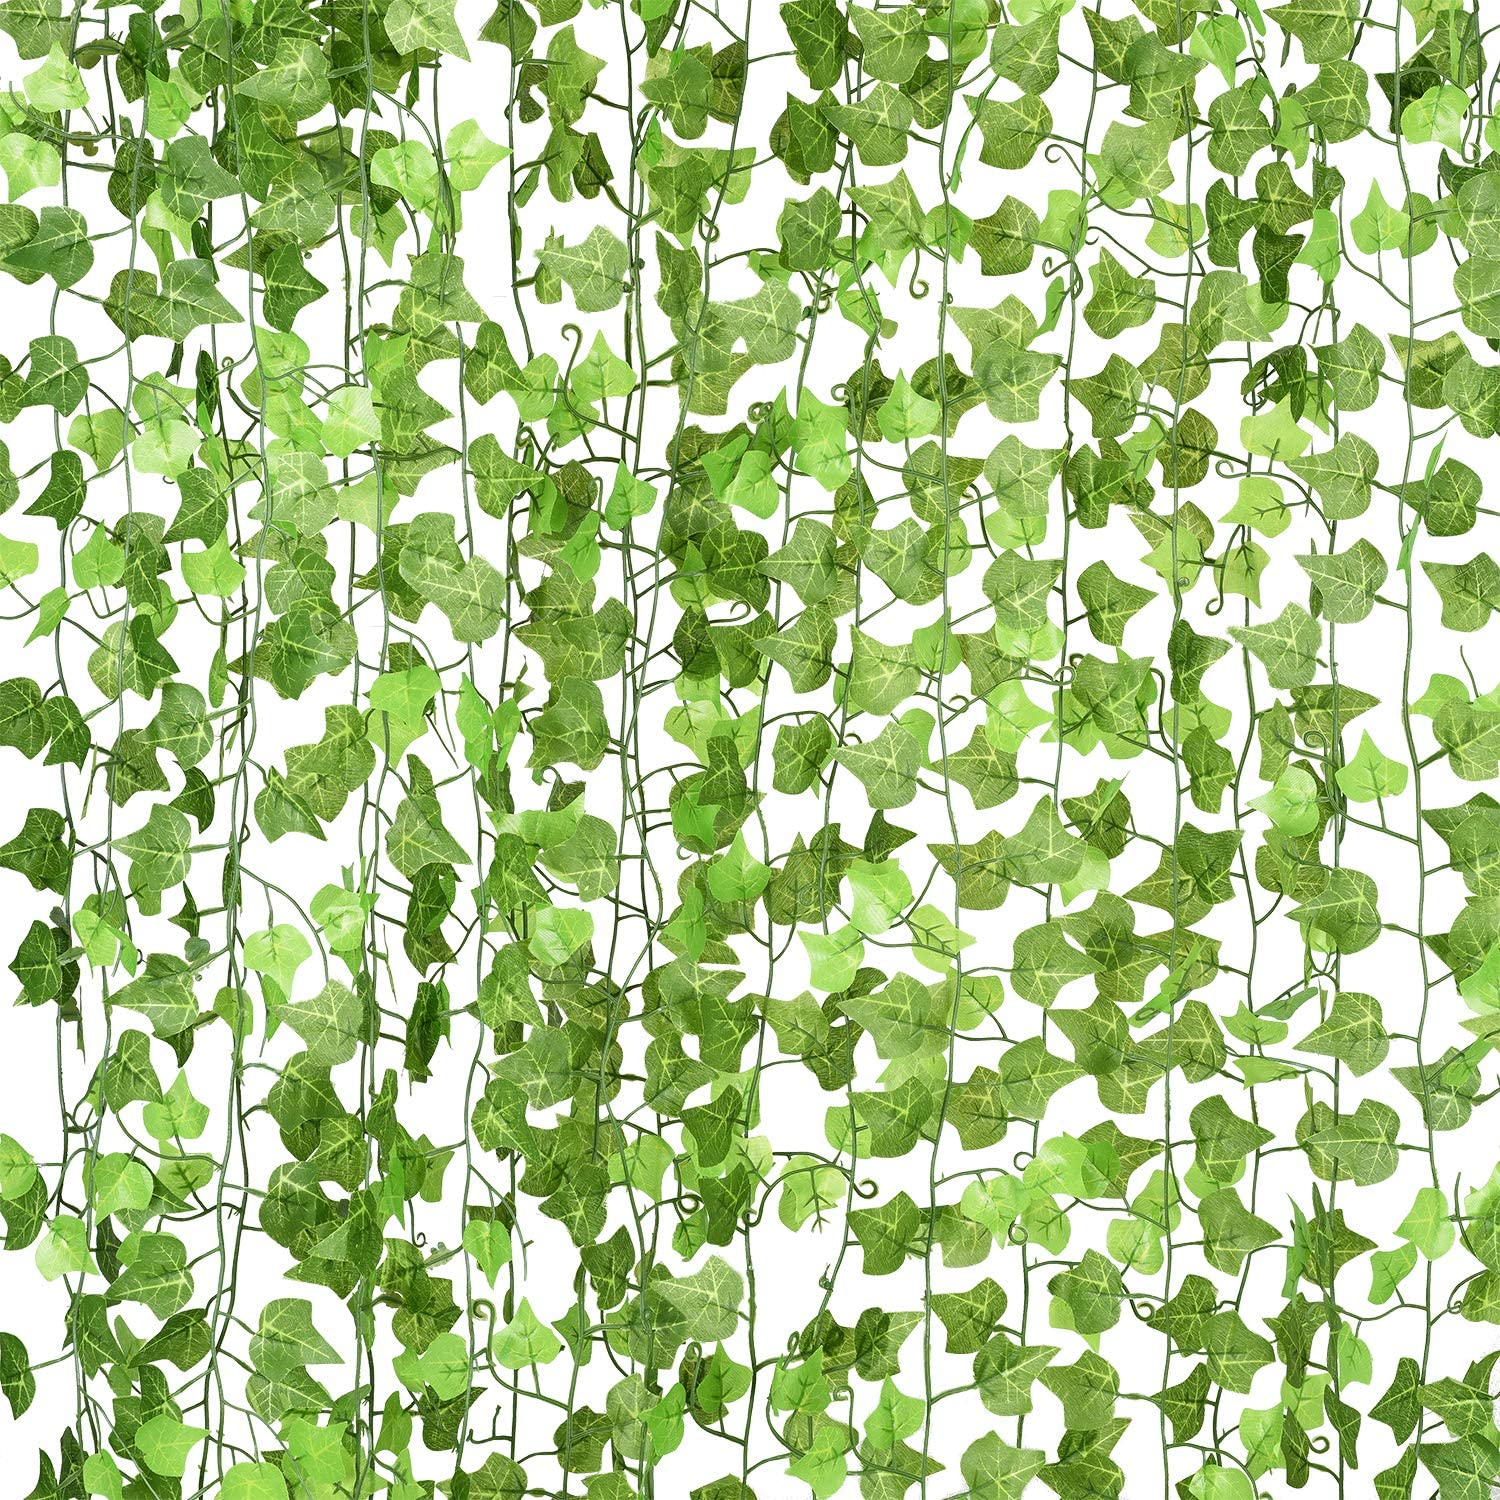 DearHouse 12 Strands Artificial Ivy Leaf Plants Vine Hanging Garland Fake Foliage Flowers Home Kitchen Garden Office Wedding Wall Decor, 91 Feet